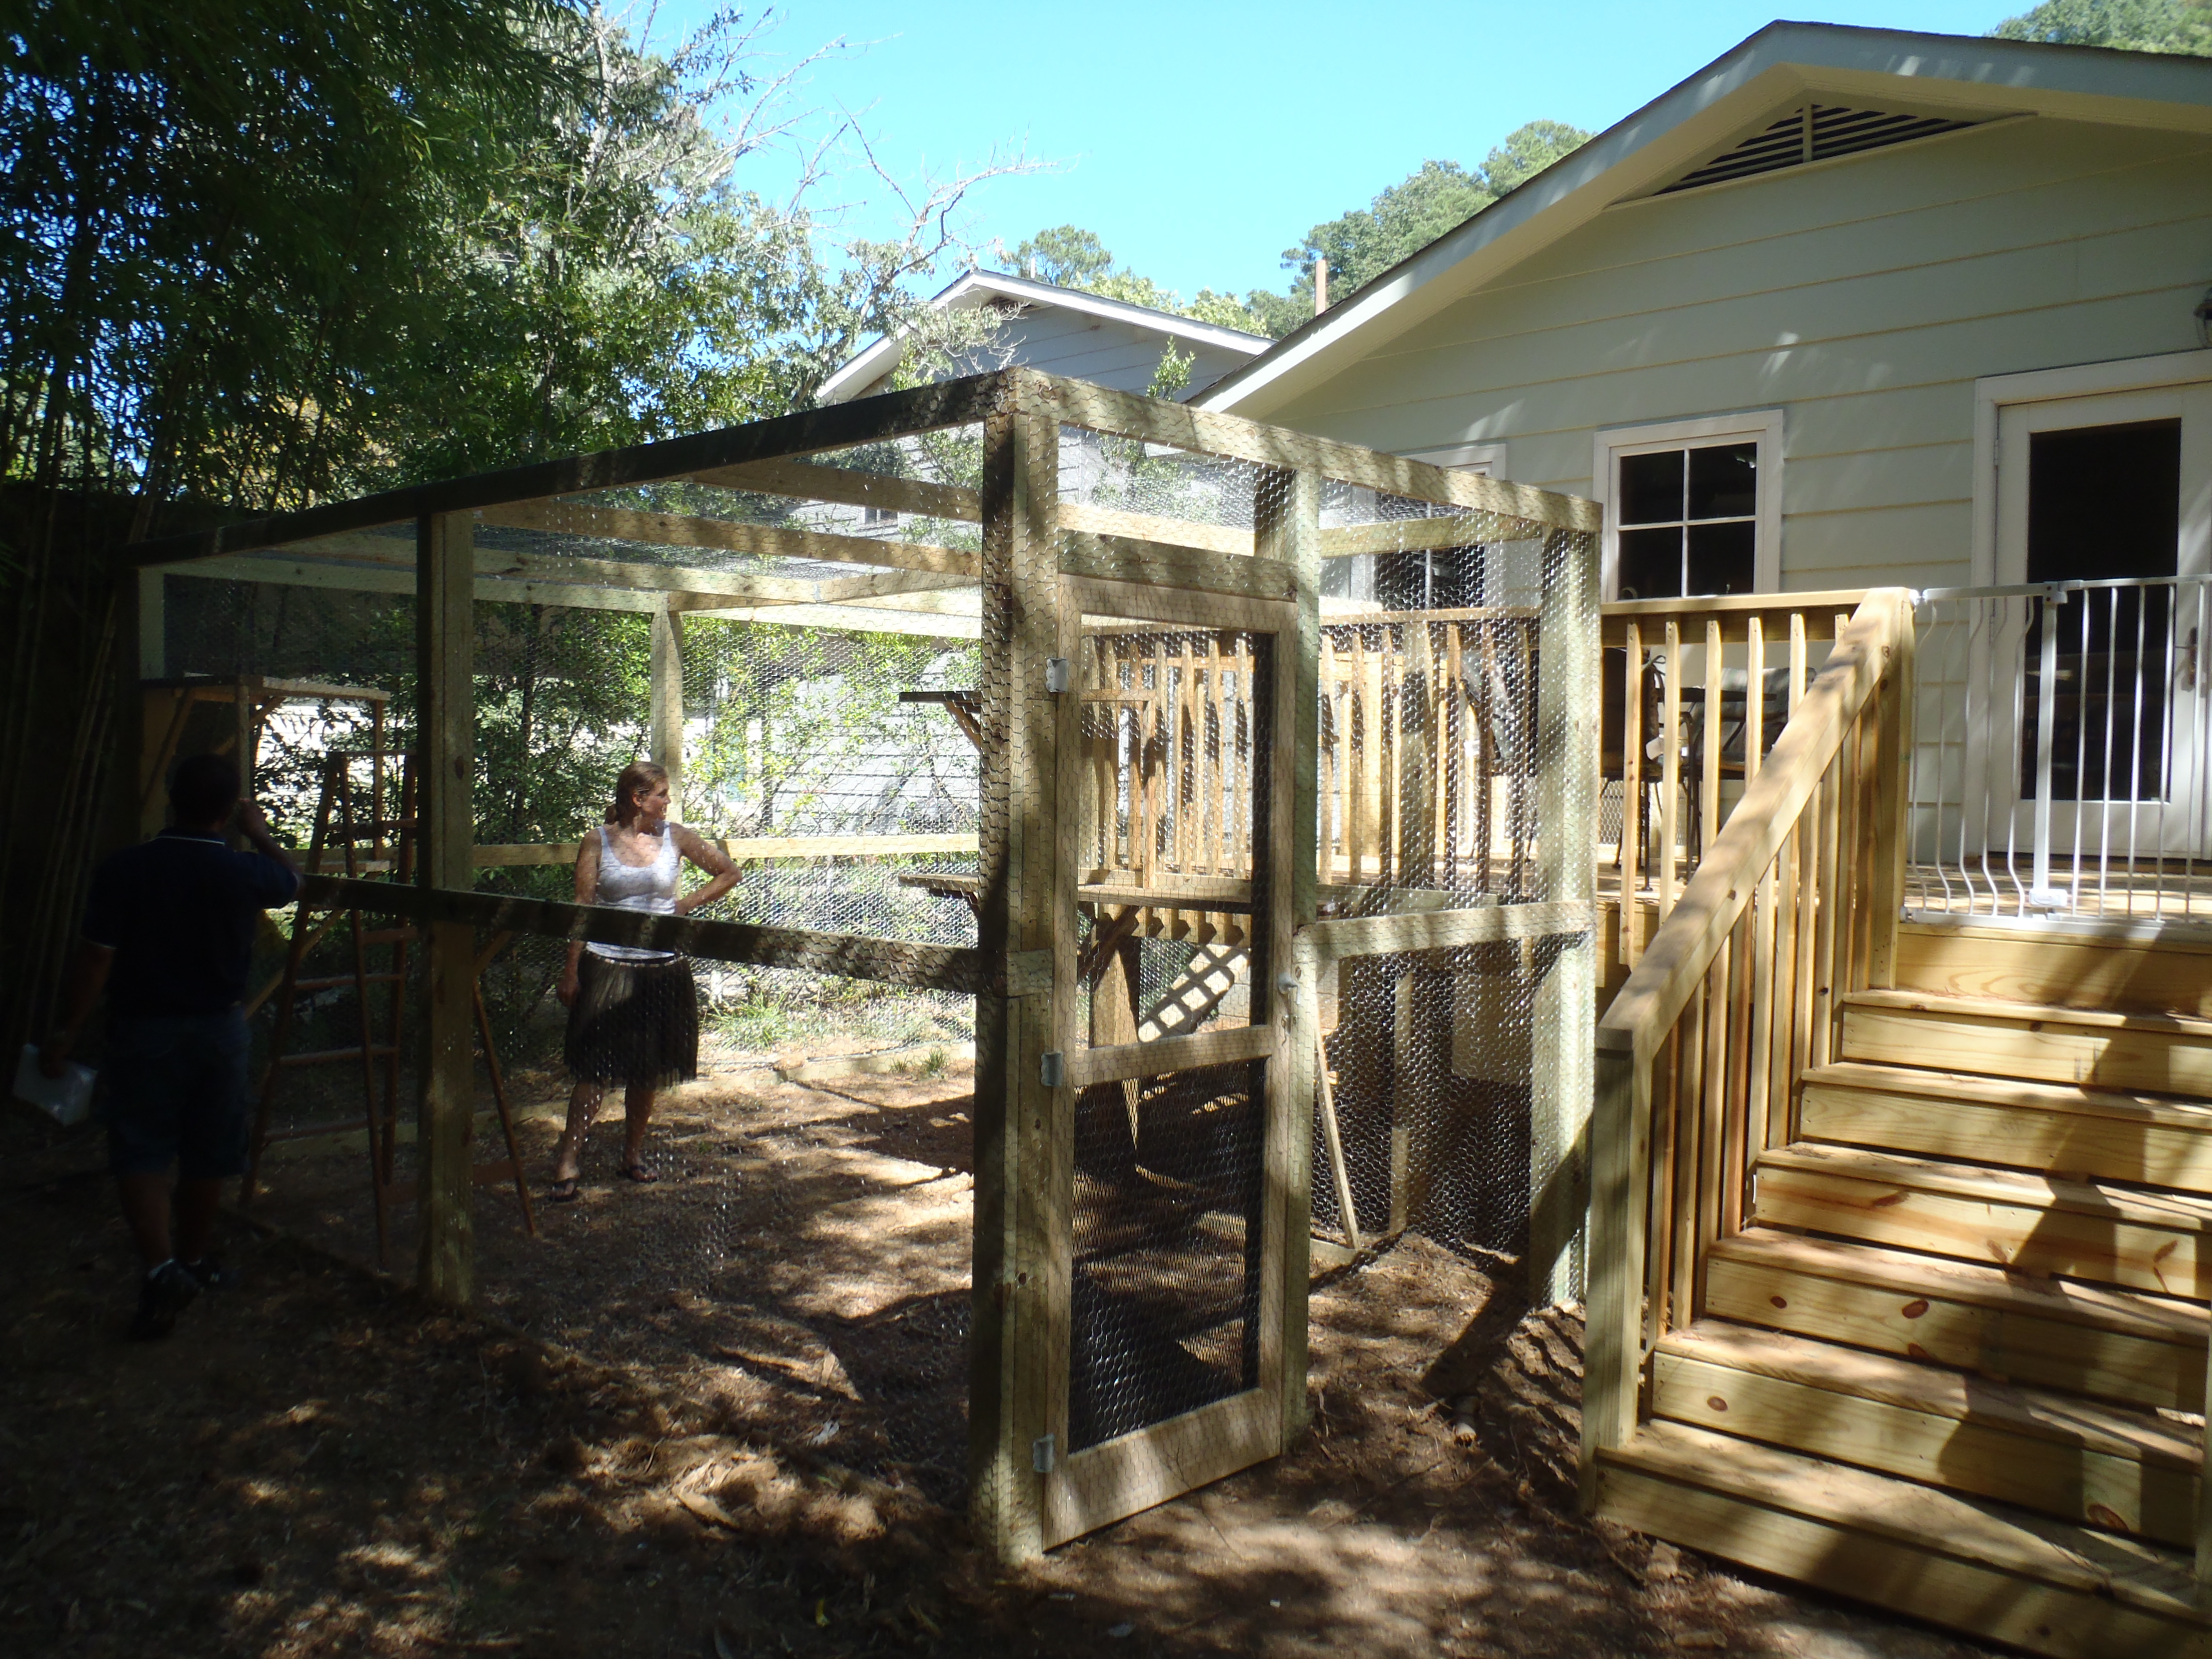 Outdoor cat enclosure and deck of Homewood house